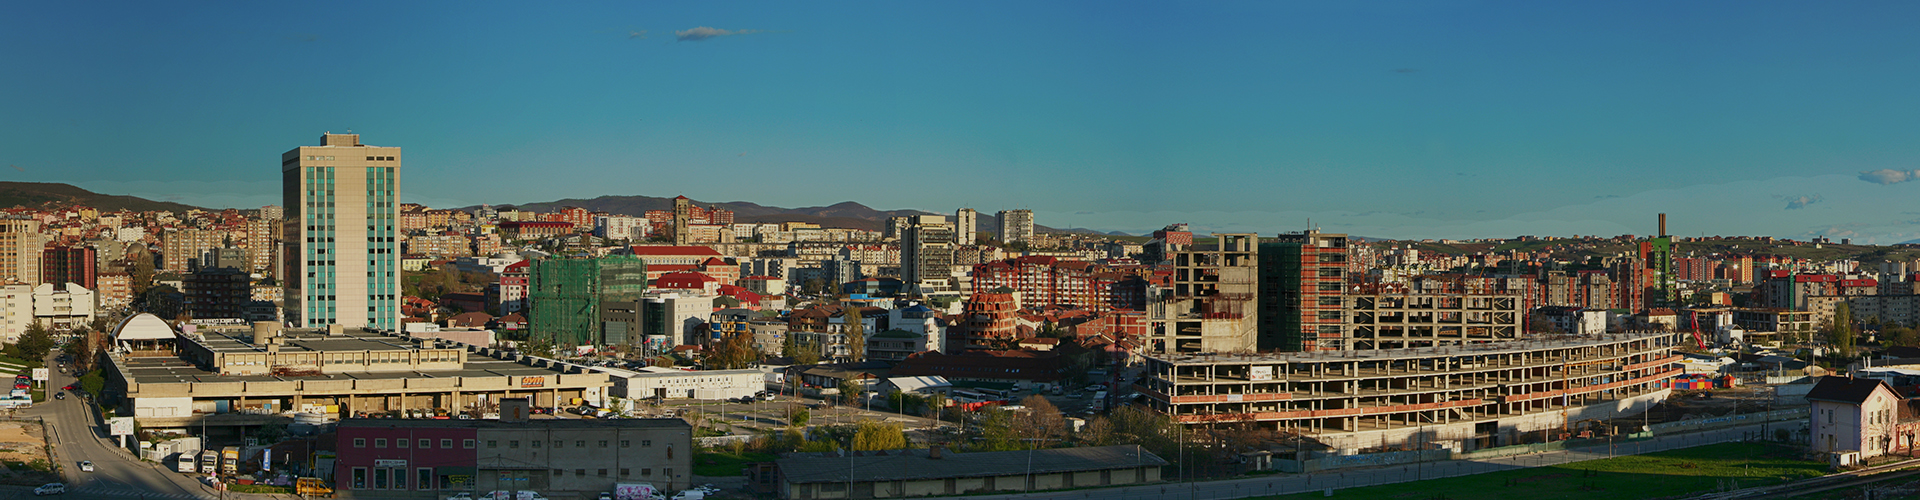 Landmark photograph of Kosovo